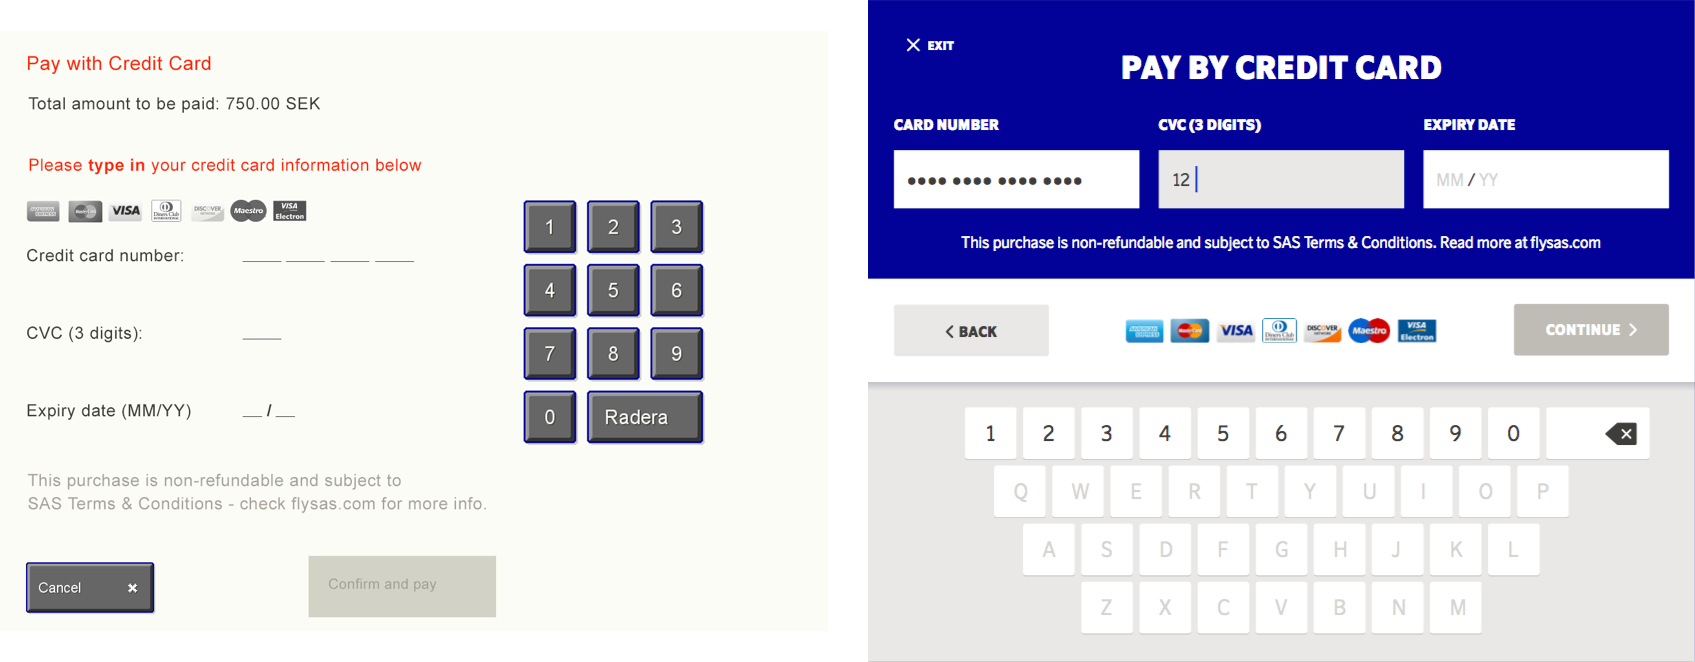 Old vs new design of the payment screen